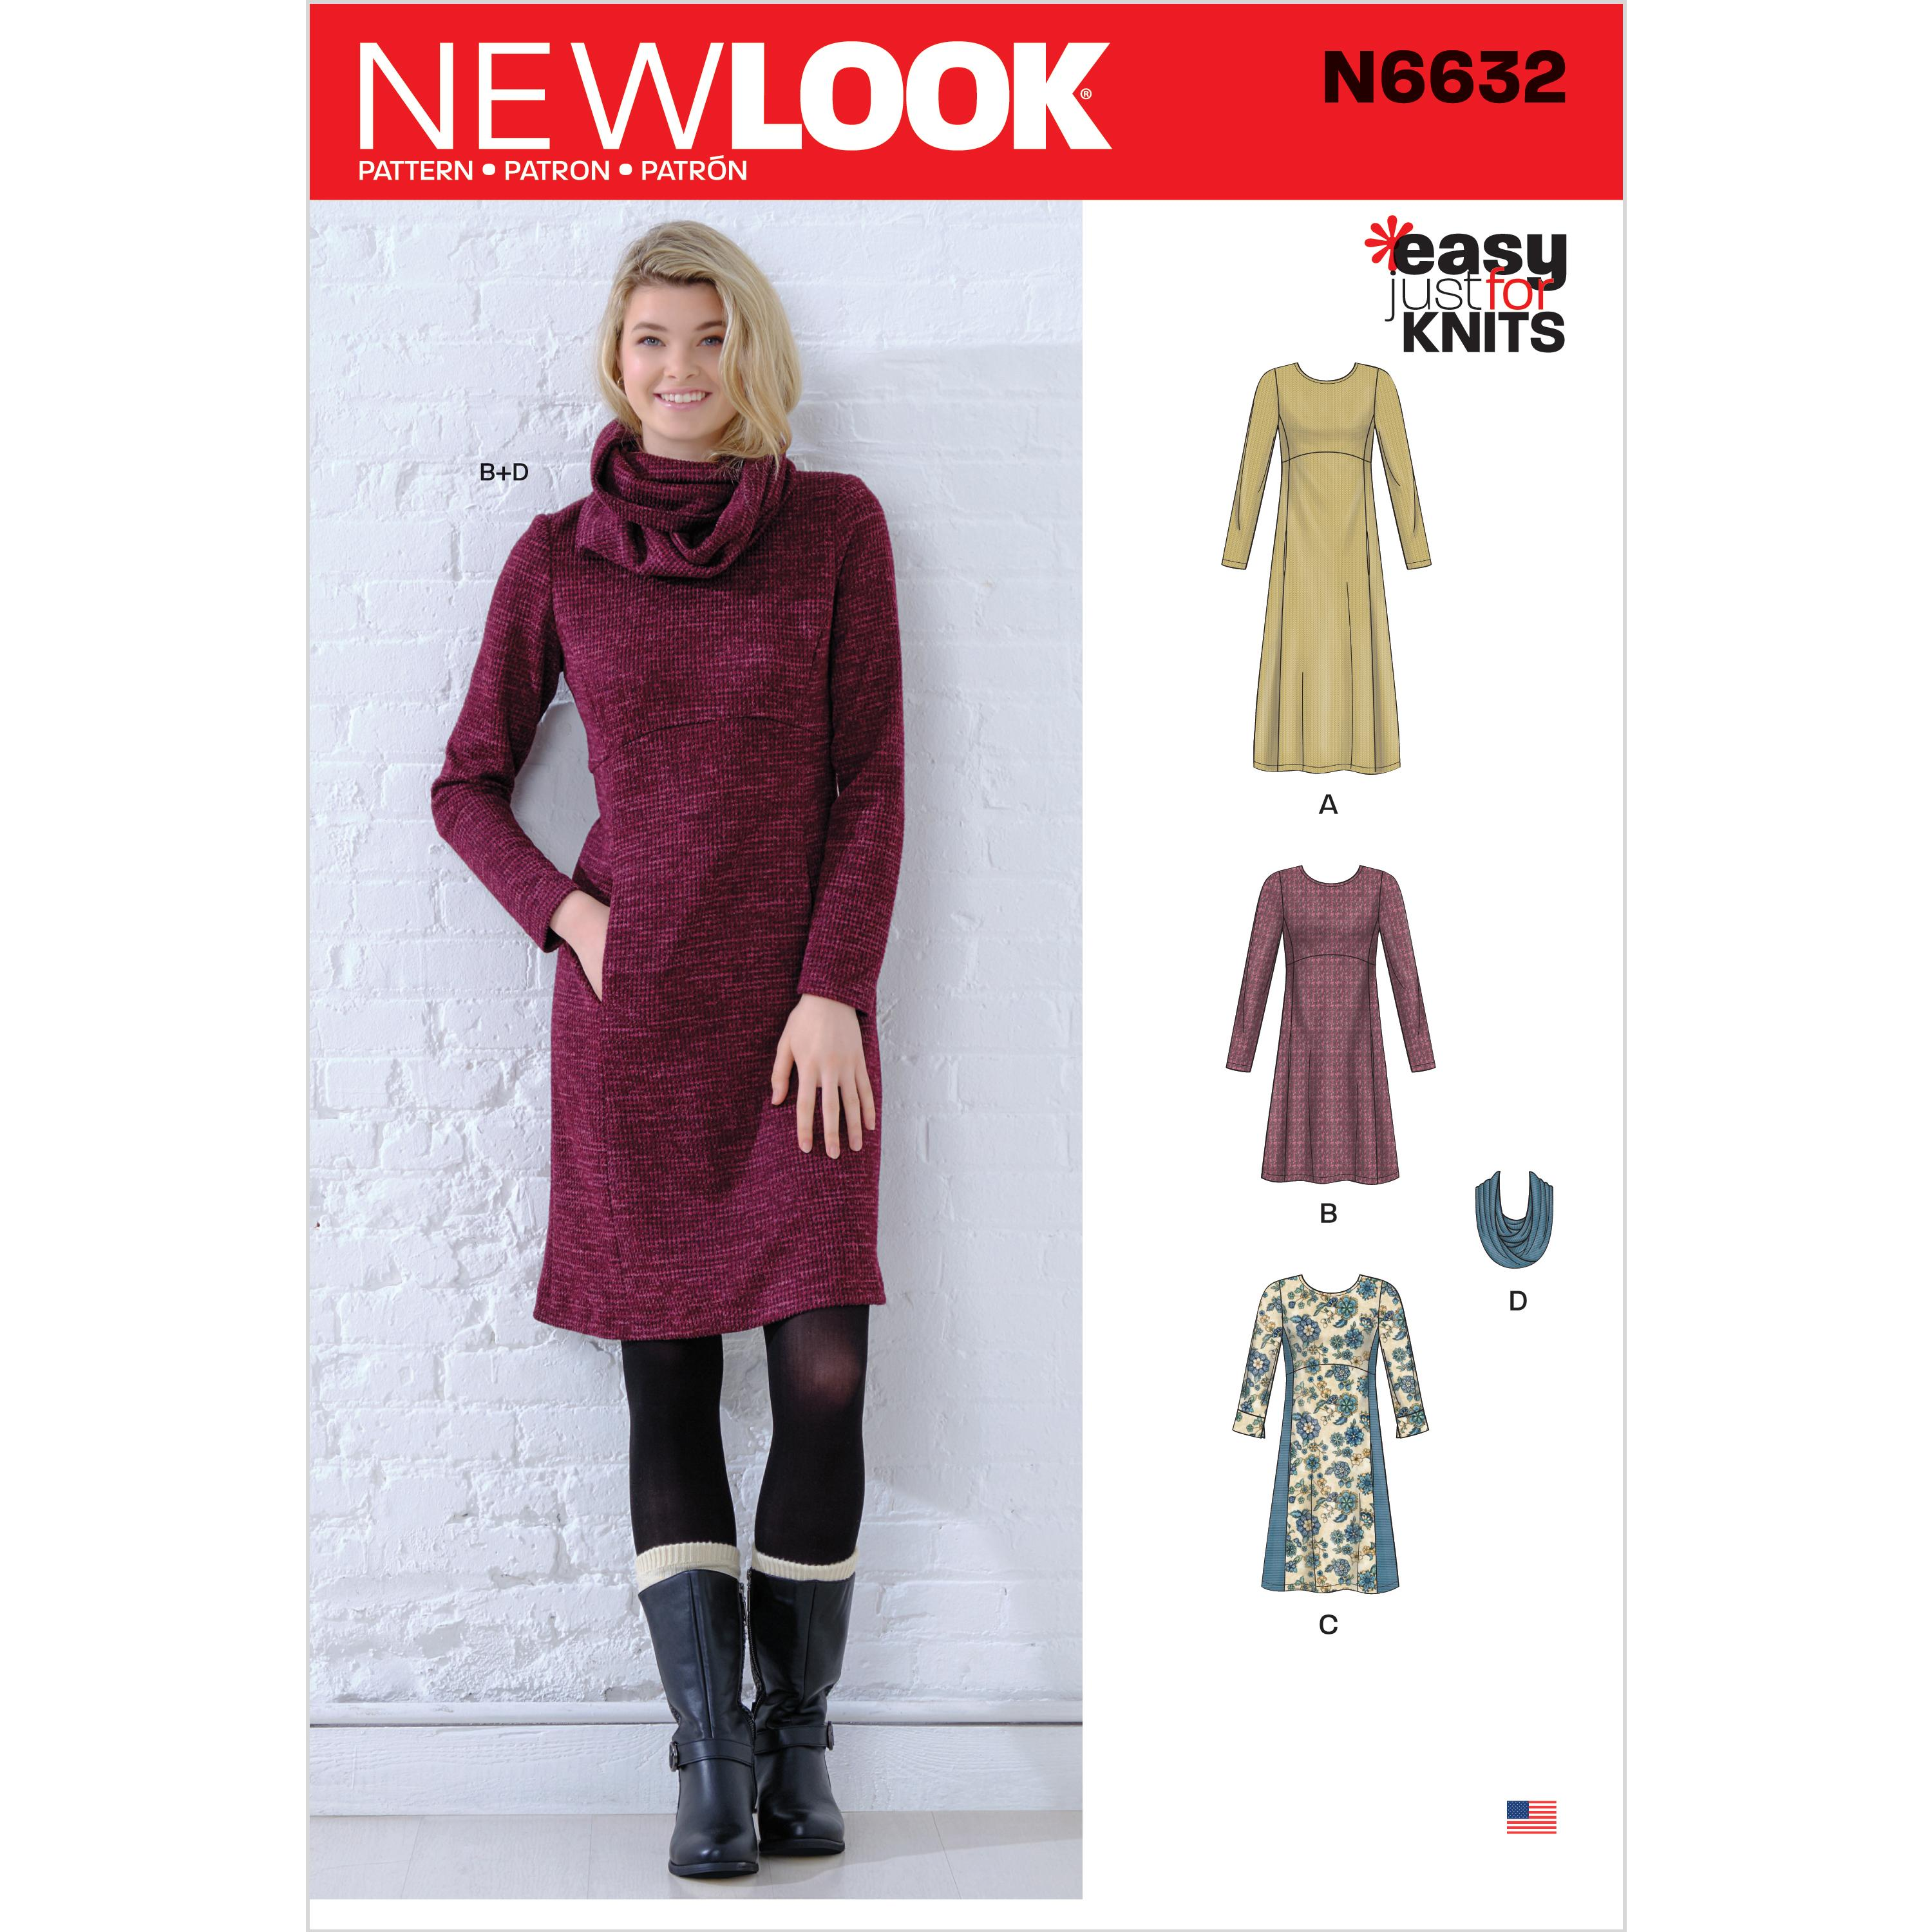 NewLook Sewing Pattern N6632 Misses' Knit Empire Dresses